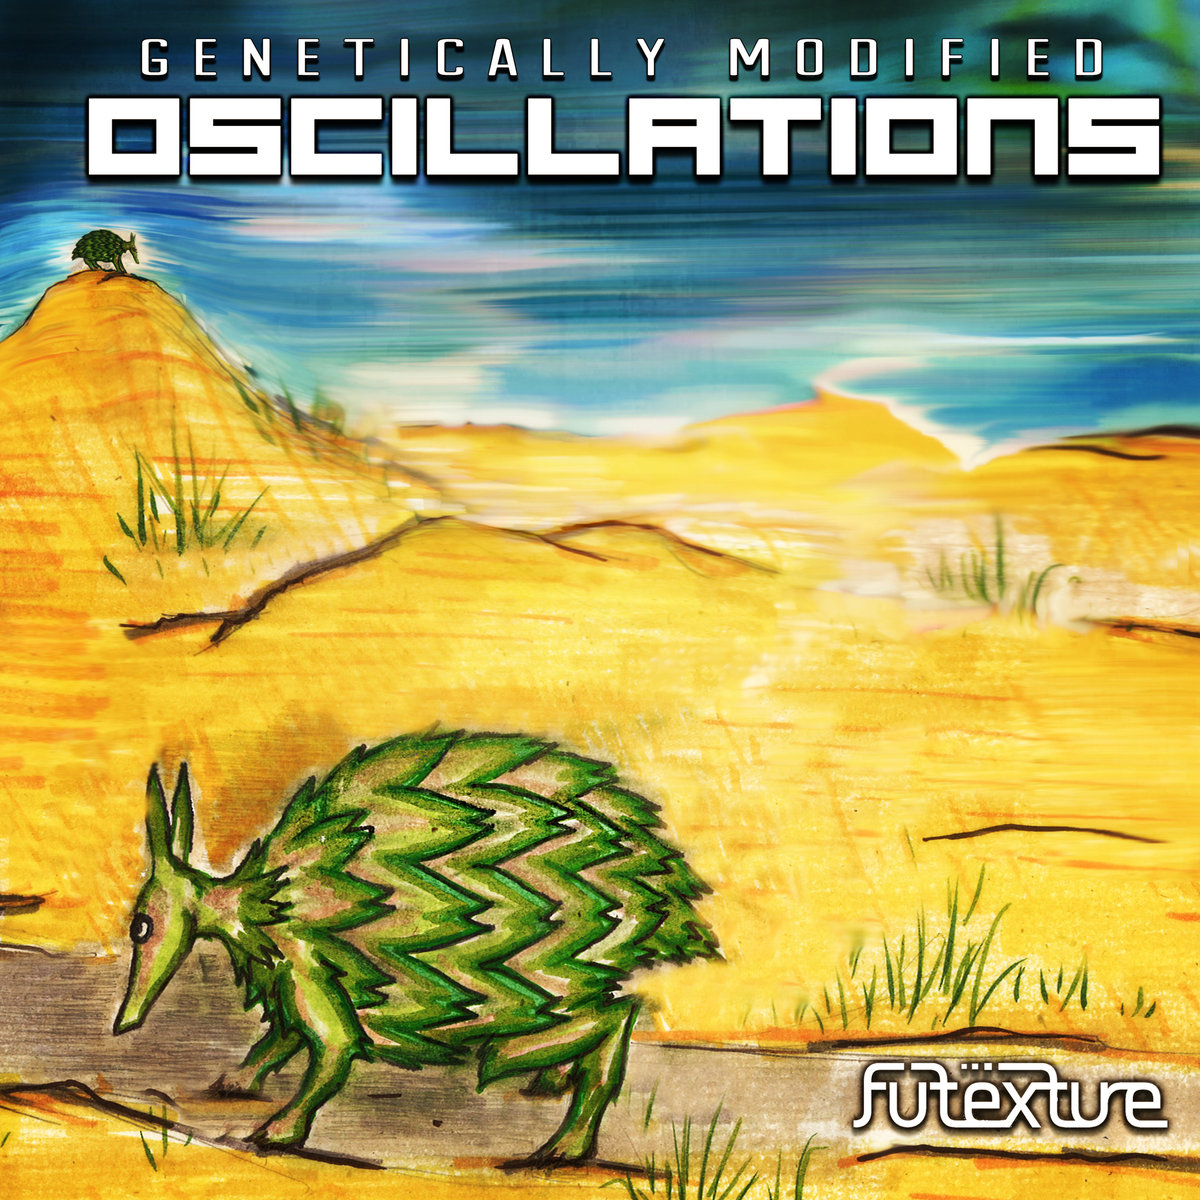 Futexture - Aardvartichoke @ 'Genetically Modified Oscillations' album (bass, breaks)